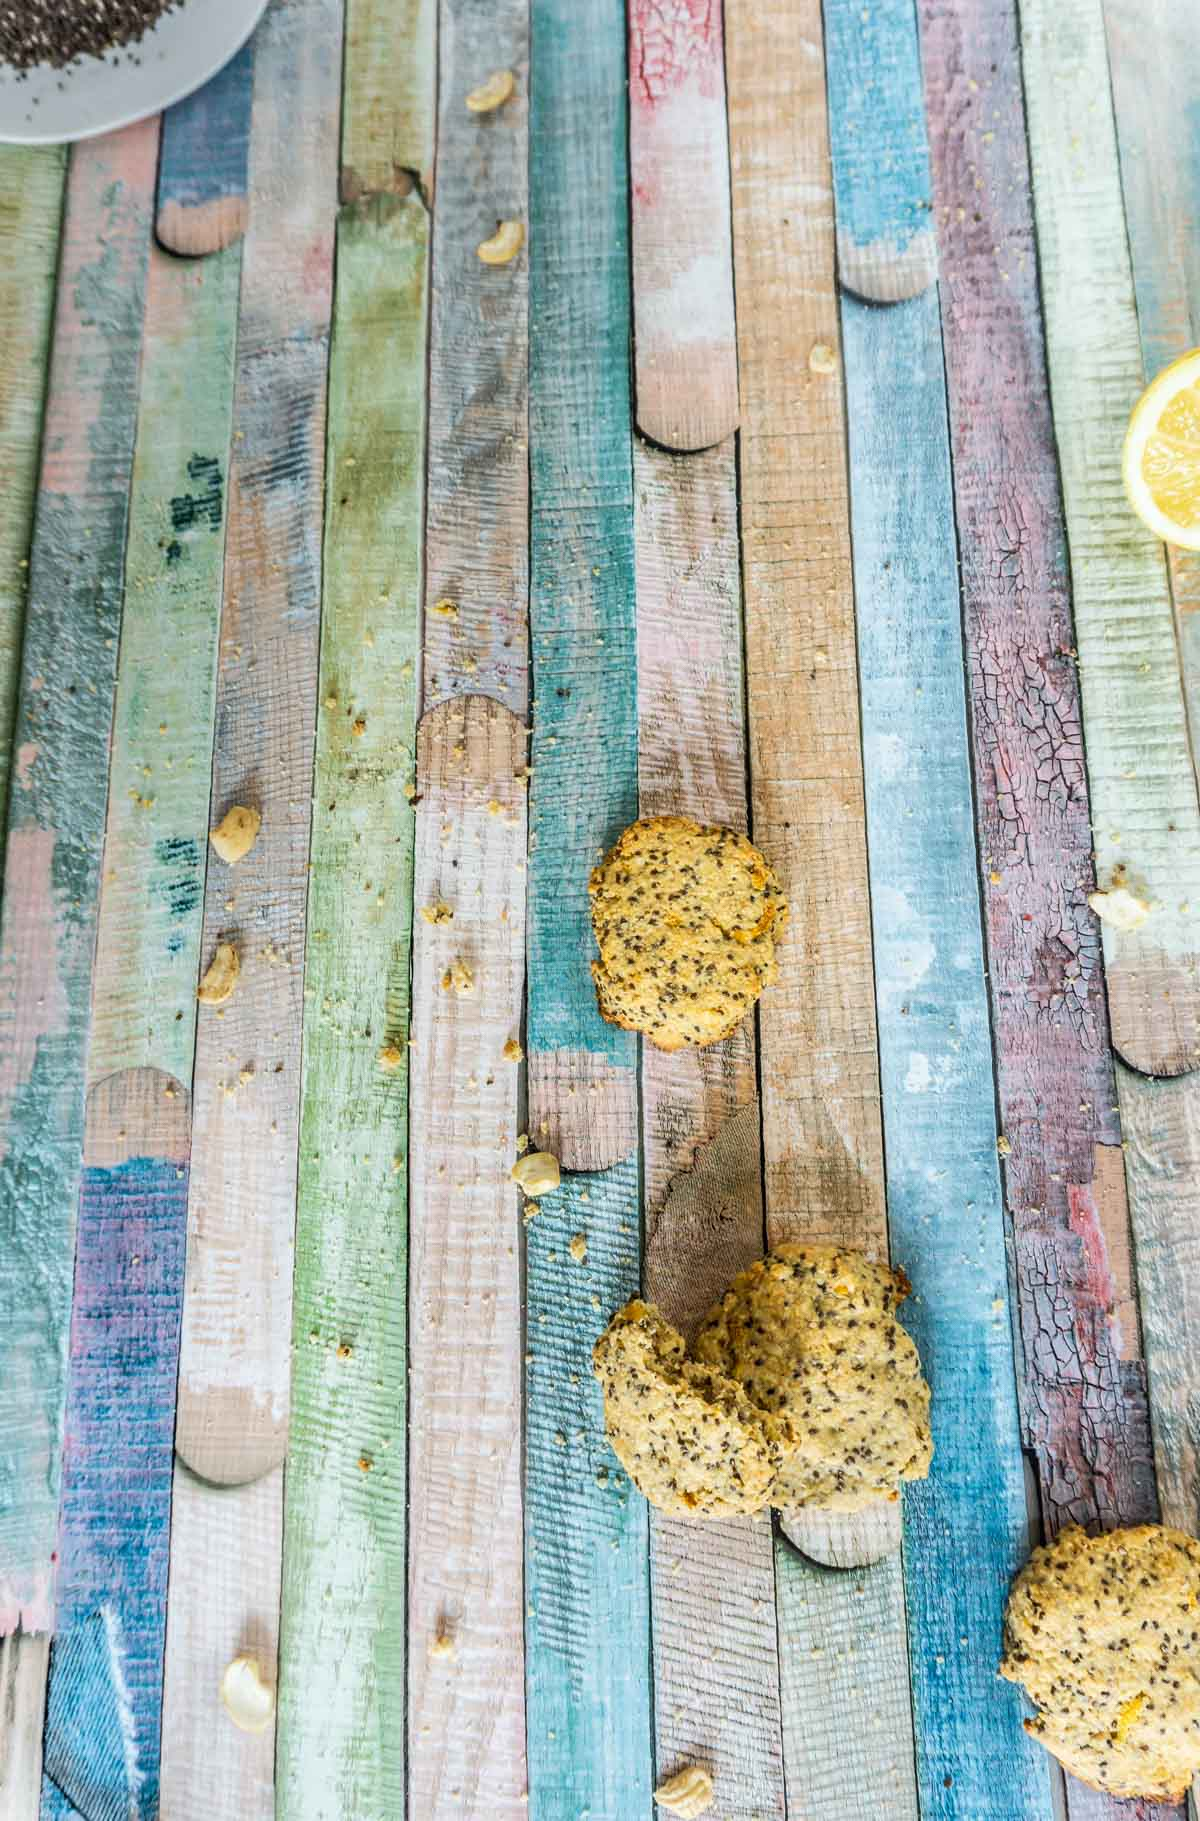 Close up picture of Lemon Chia Cookies on a colored surface